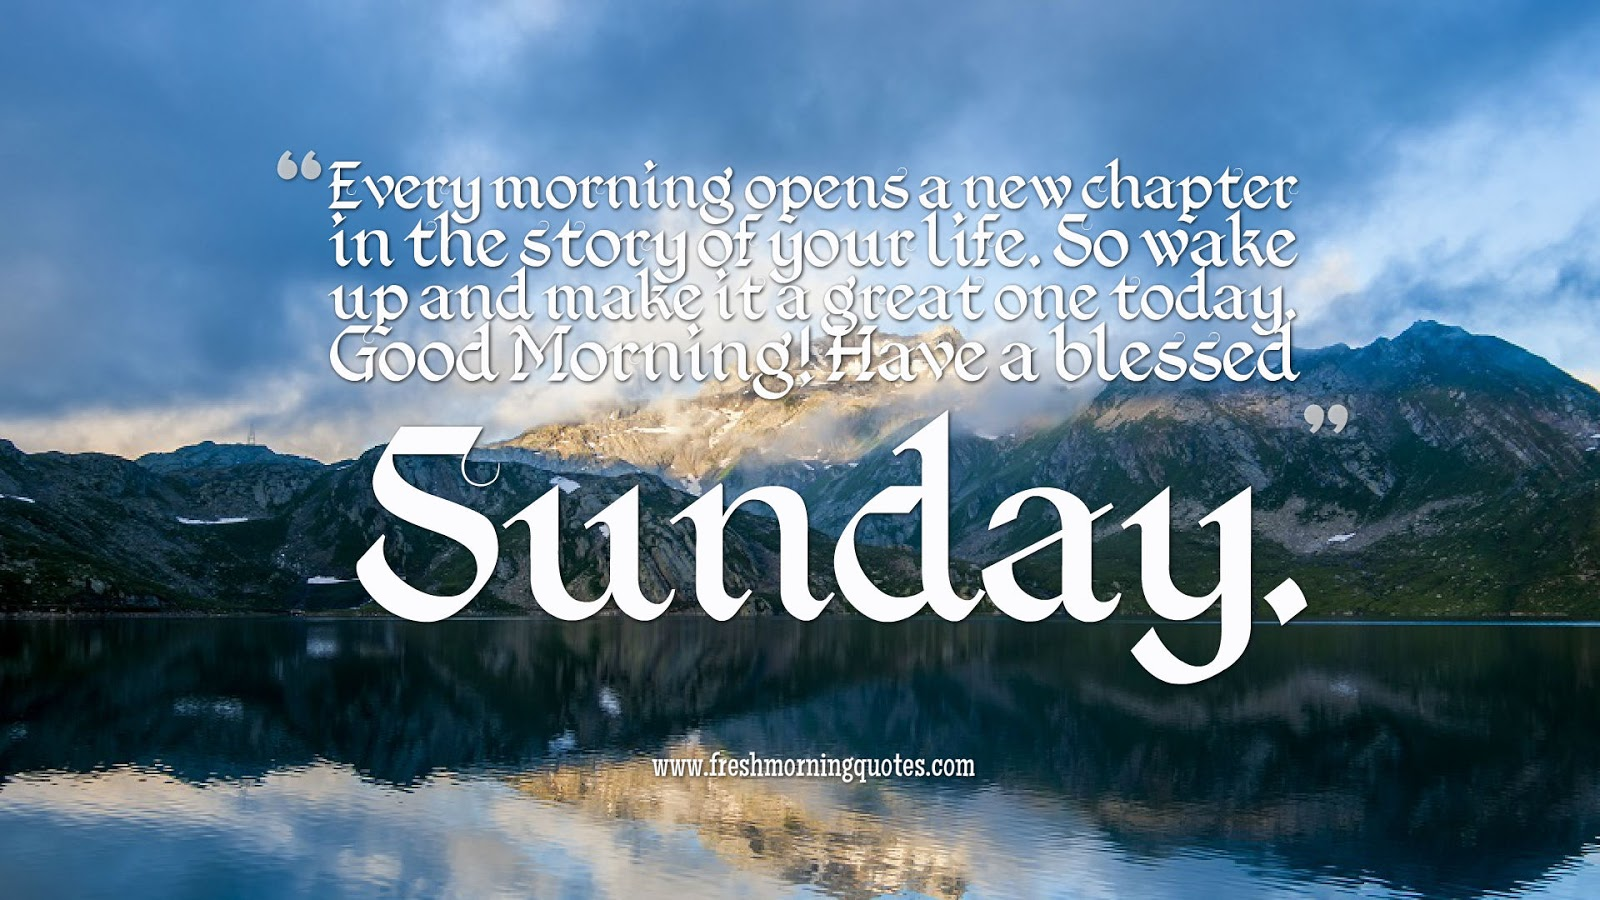 Quotes Morning 40 Beautiful Good Morning Sunday Quotes  Freshmorningquotes